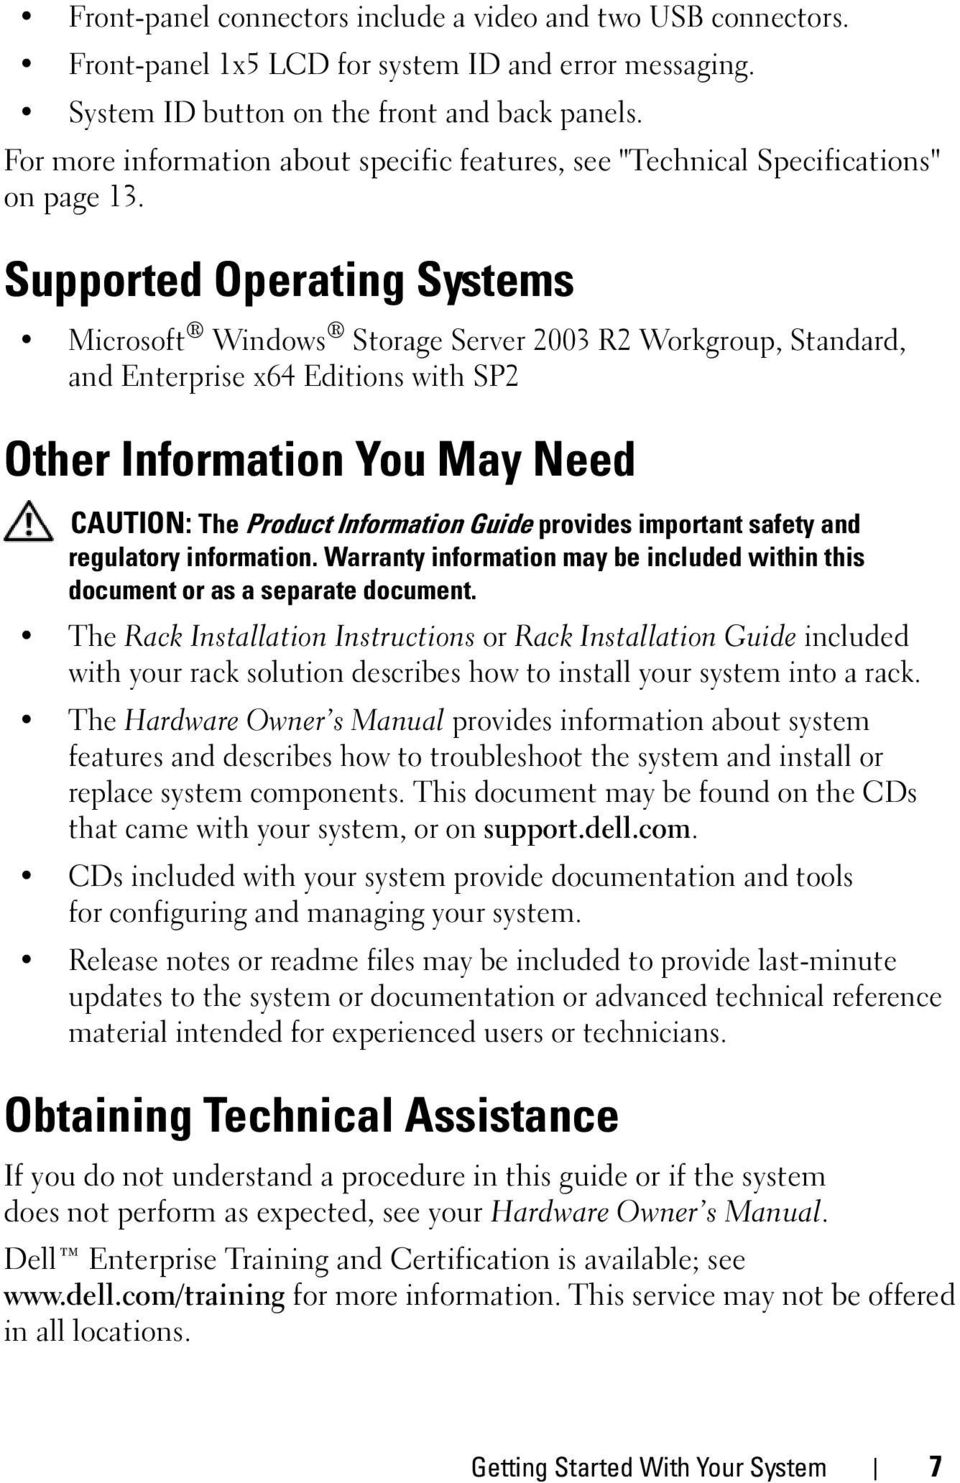 Supported Operating Systems Microsoft Windows Storage Server 2003 R2 Workgroup, Standard, and Enterprise x64 Editions with SP2 Other Information You May Need CAUTION: The Product Information Guide